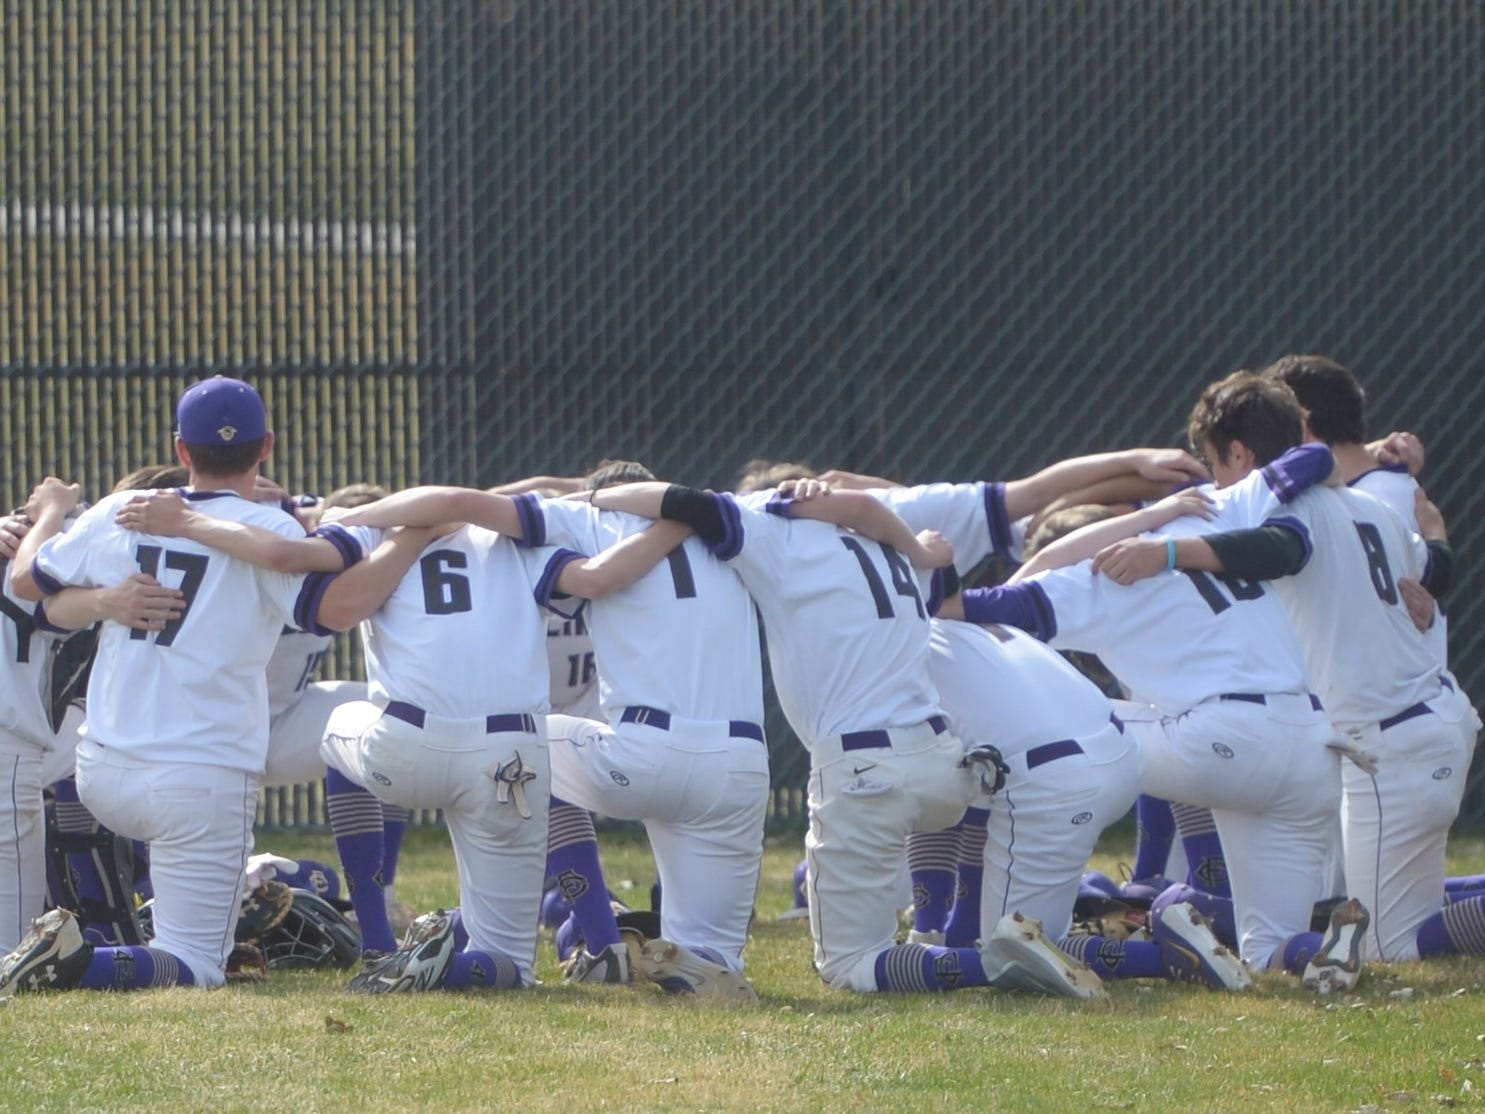 The Fort Collins baseball team huddles before Monday's game against Denver South. The Lambkins won 13-3 to move to 10-0 on the season.